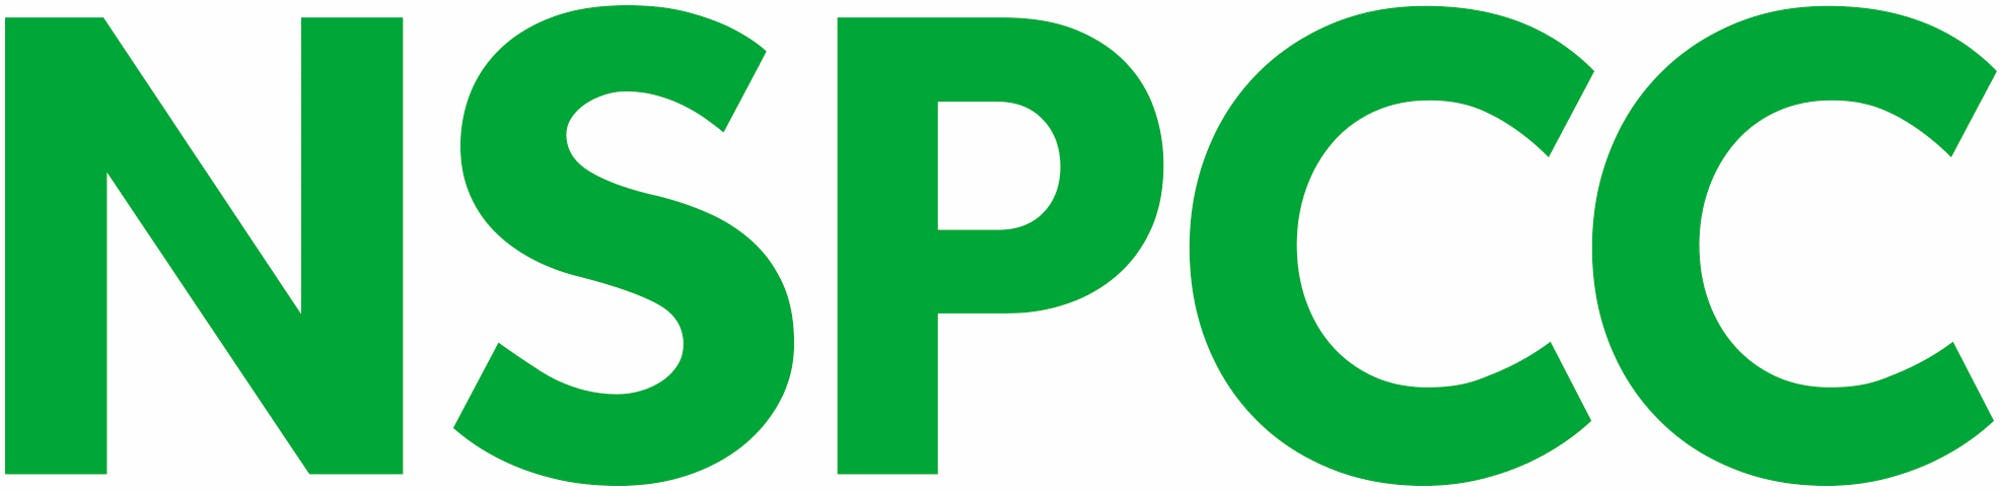 Walpole announces new partnership and webinar with the NSPCC + Introducing the new Walpole Events Portal